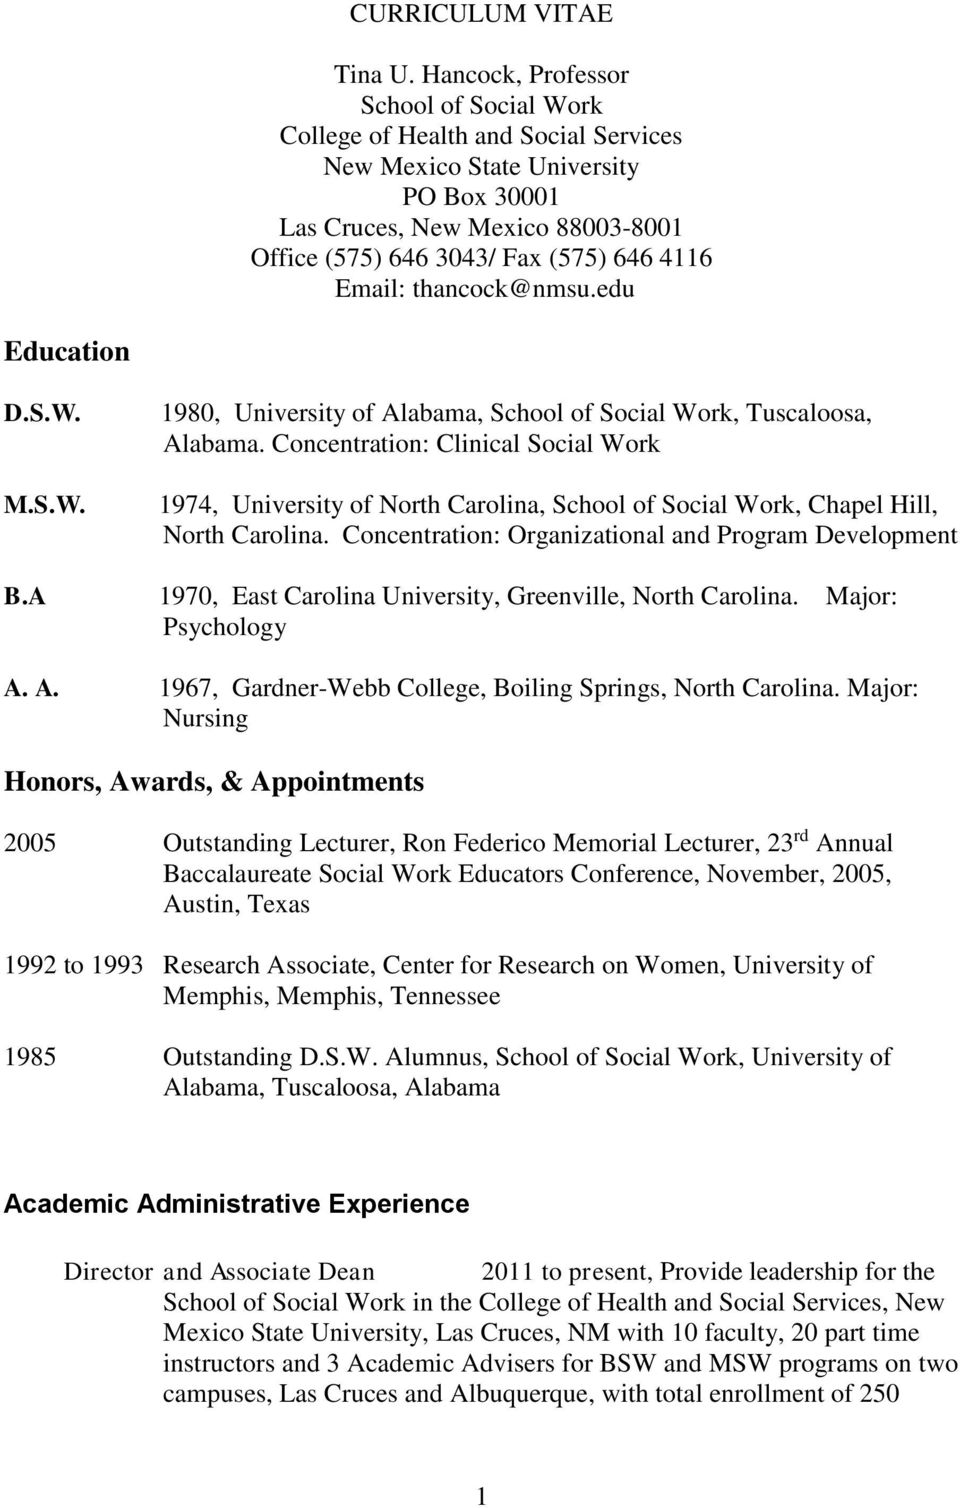 Email: thancock@nmsu.edu Education D.S.W. M.S.W. 1980, University of Alabama, School of Social Work, Tuscaloosa, Alabama.